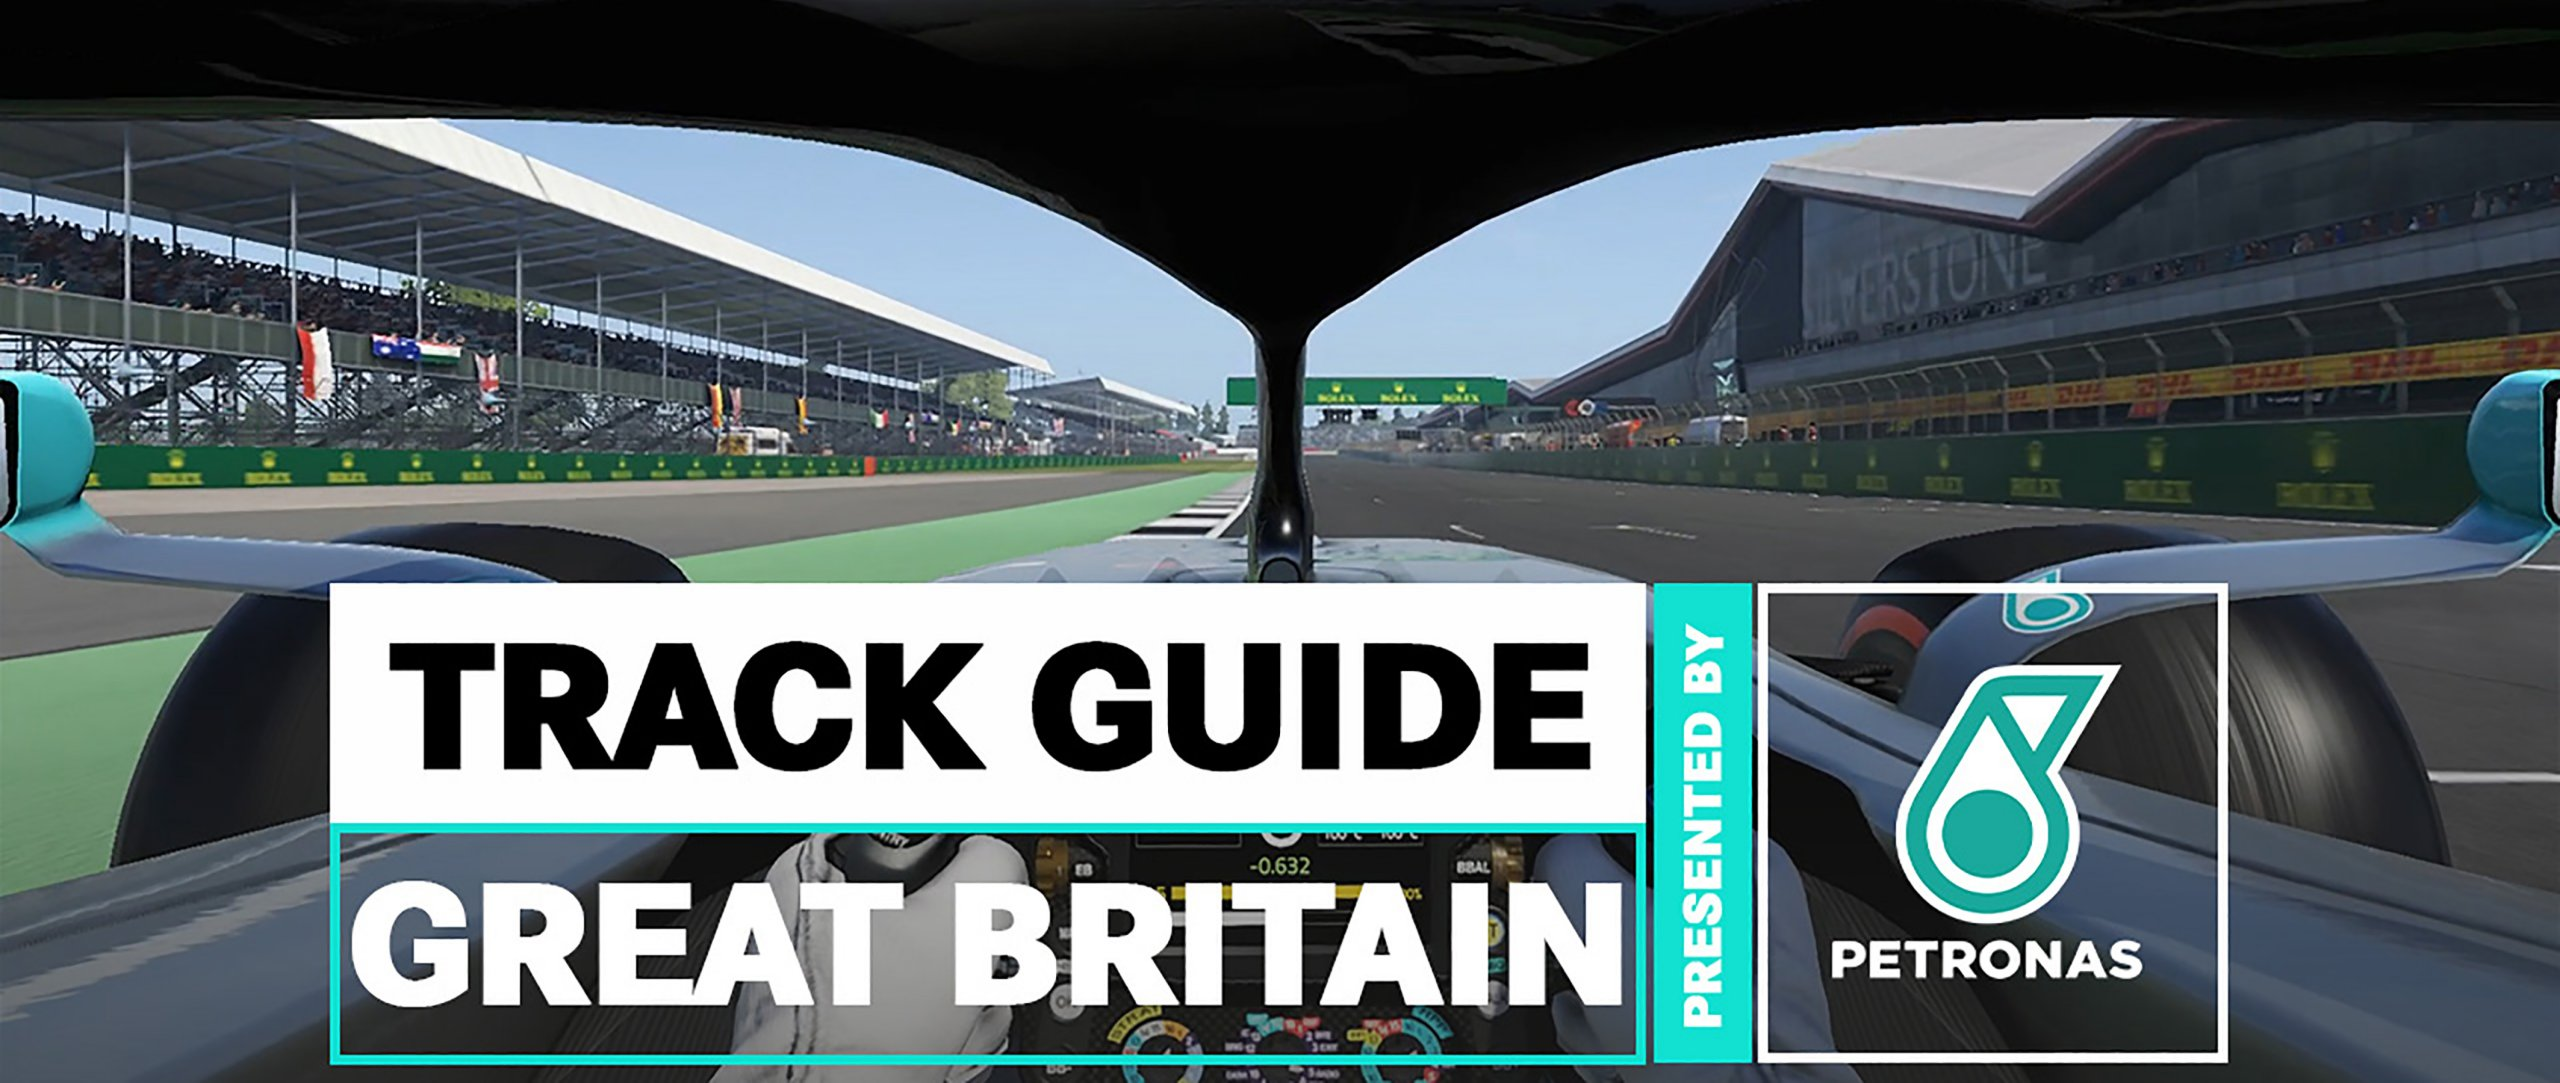 Thumbnail-Silverstone-Track-Guide---16_4252